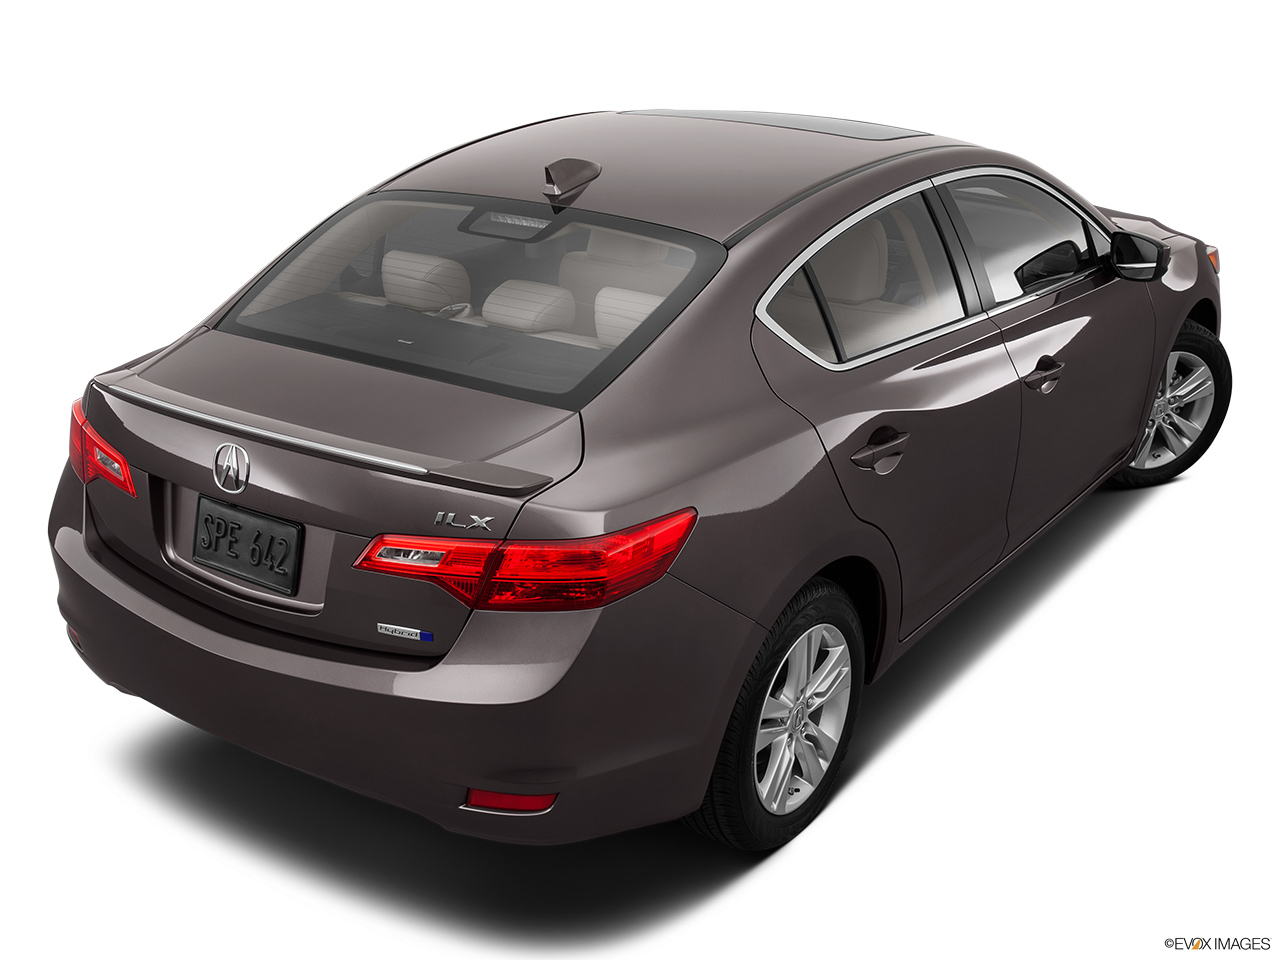 2014 Acura ILX Hybrid Base Rear 3/4 angle view.